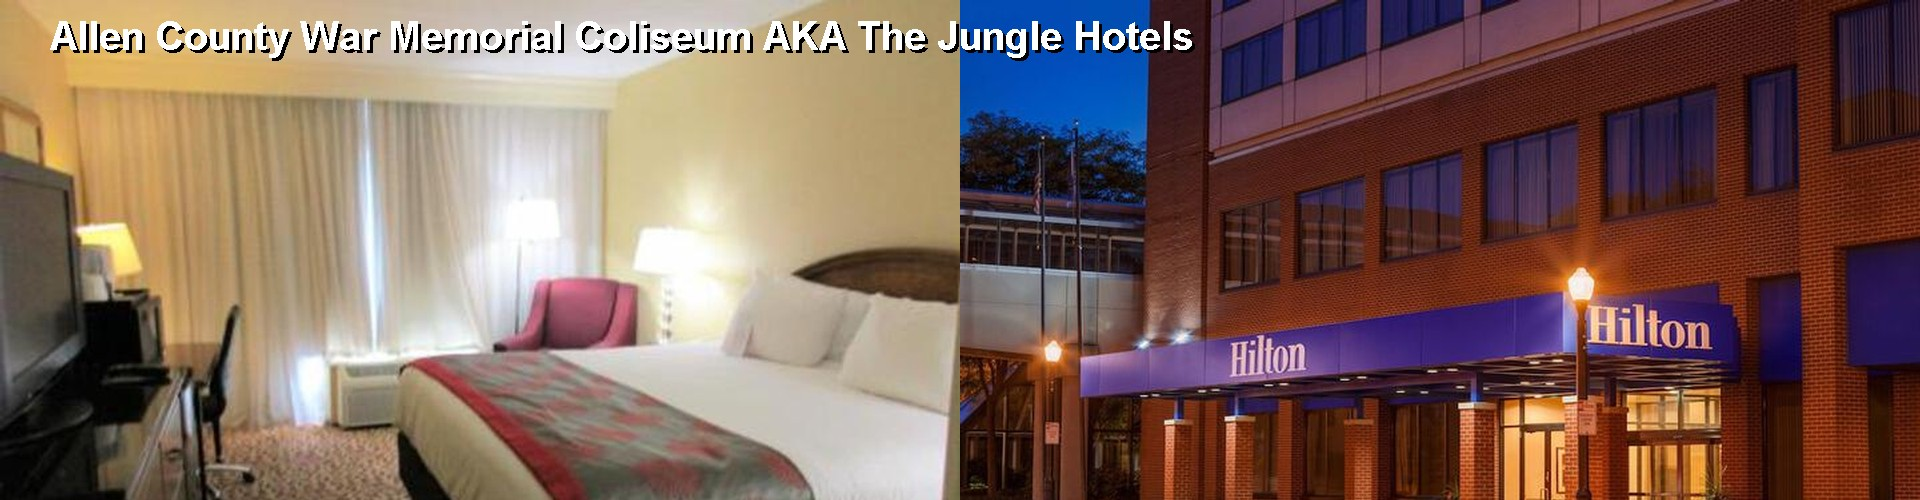 5 Best Hotels Near Allen County War Memorial Coliseum Aka The Jungle